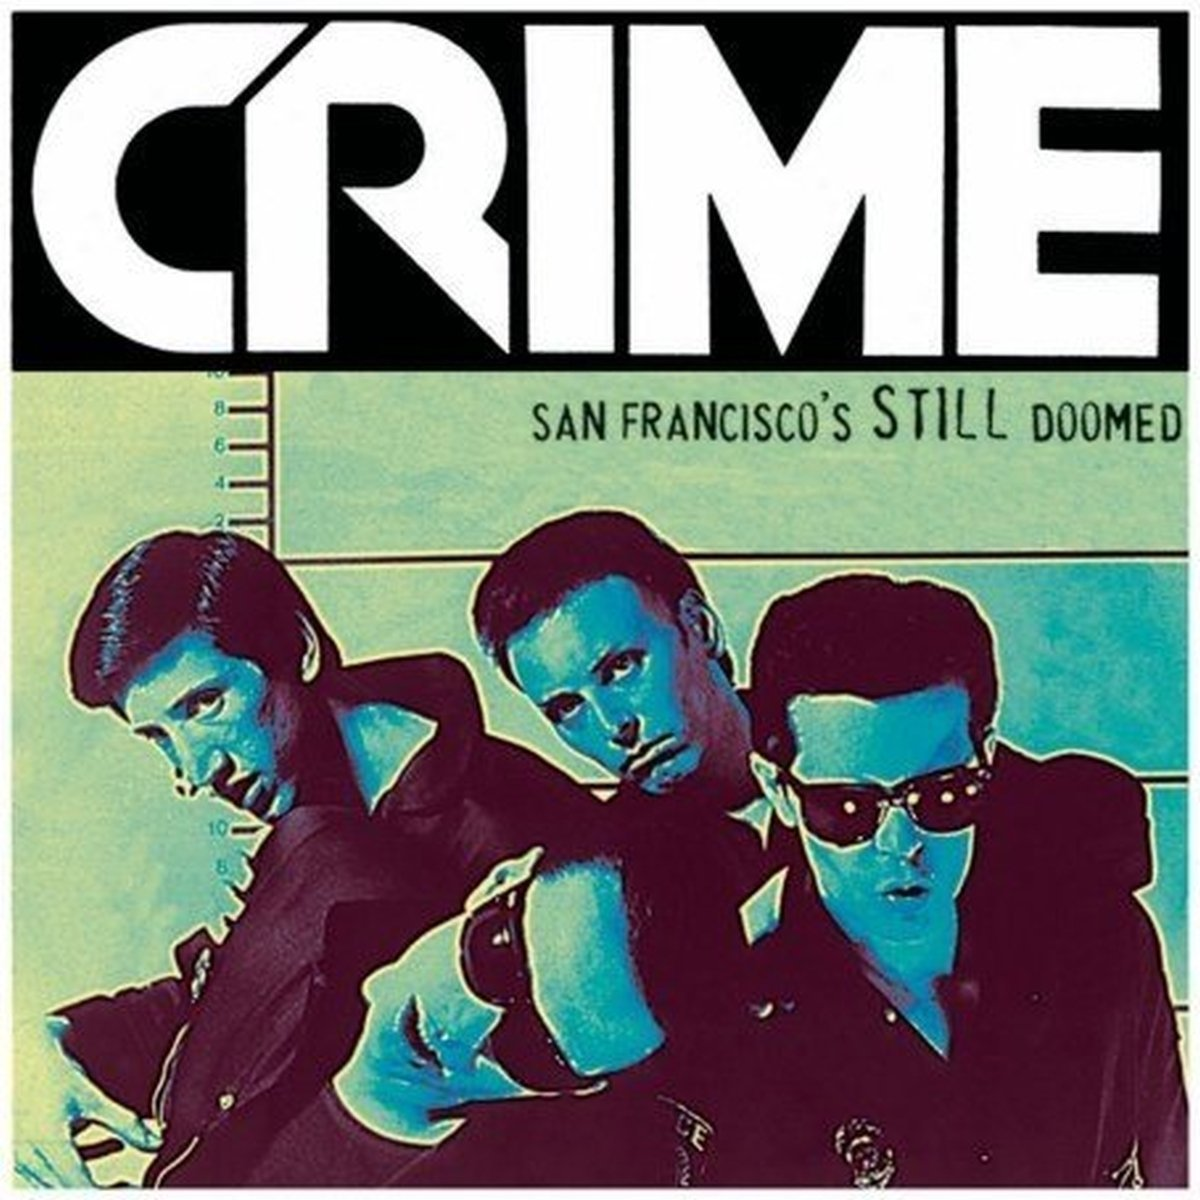 having kicked off in the late sixties on the east coast with bands like the stooges the american punk wave came to san francisco late circa 1976